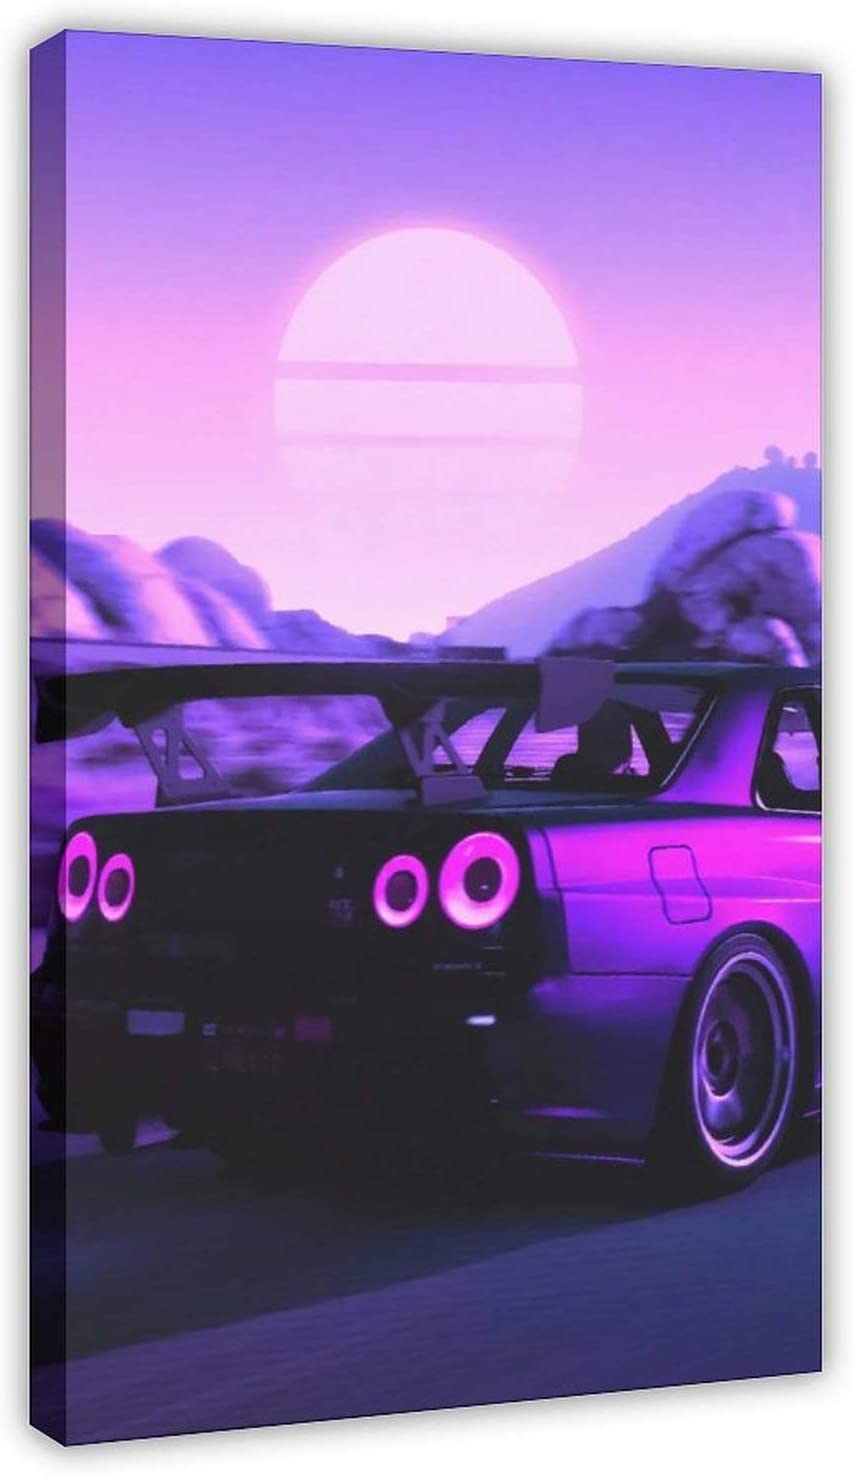 Skyline GTR R34 Anime Max 79% OFF Car Post Max 88% OFF Posters Jdm